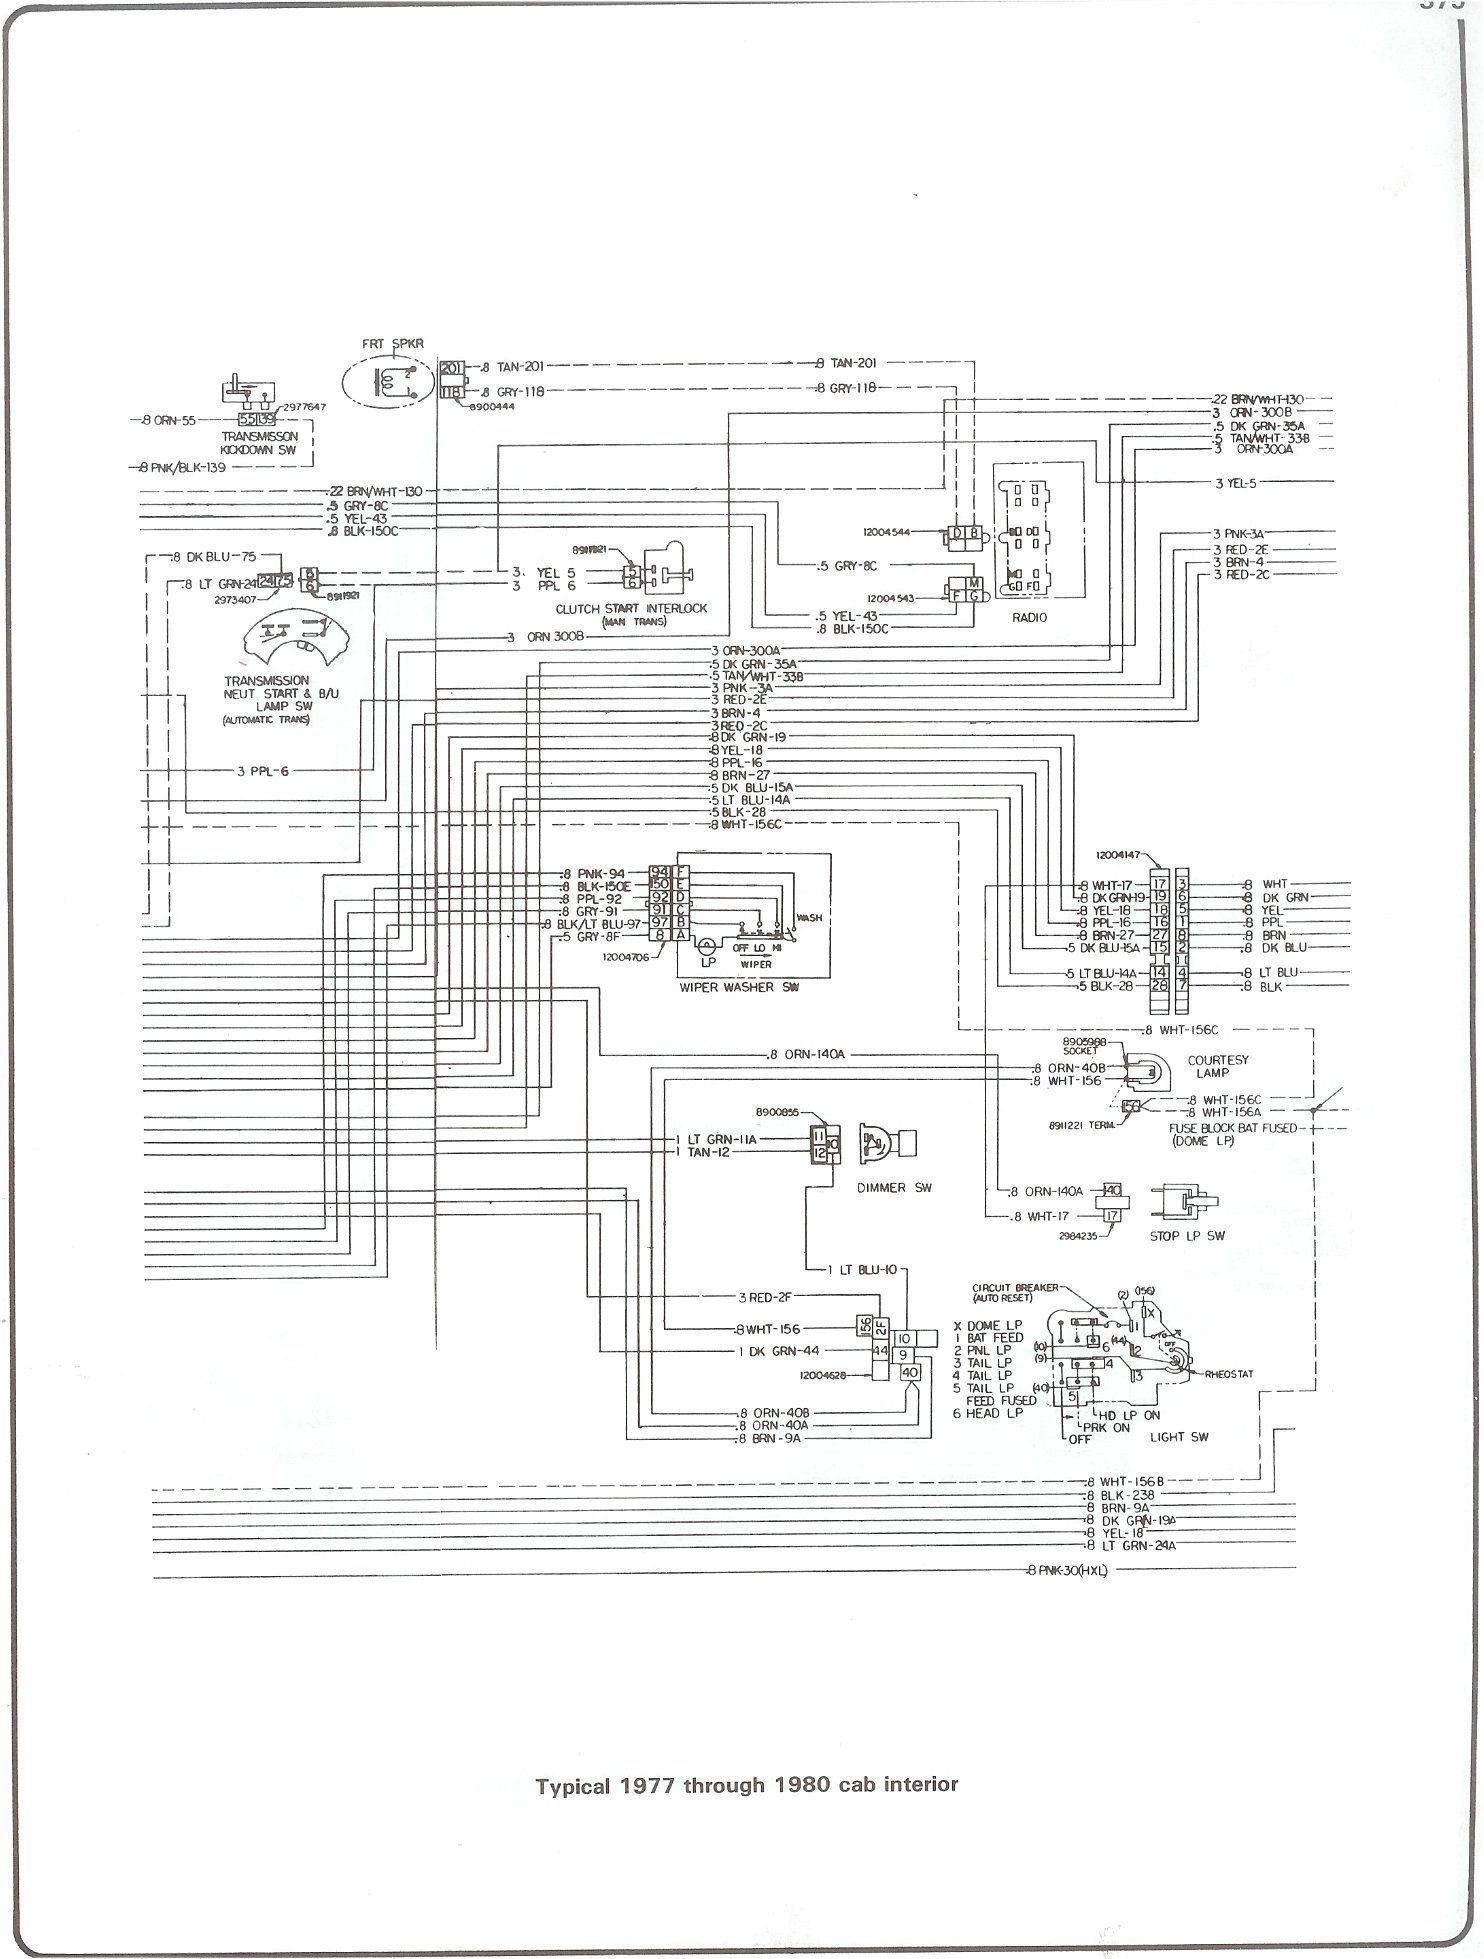 77 80_cab_inter complete 73 87 wiring diagrams 1987 chevy truck wiring diagram at crackthecode.co